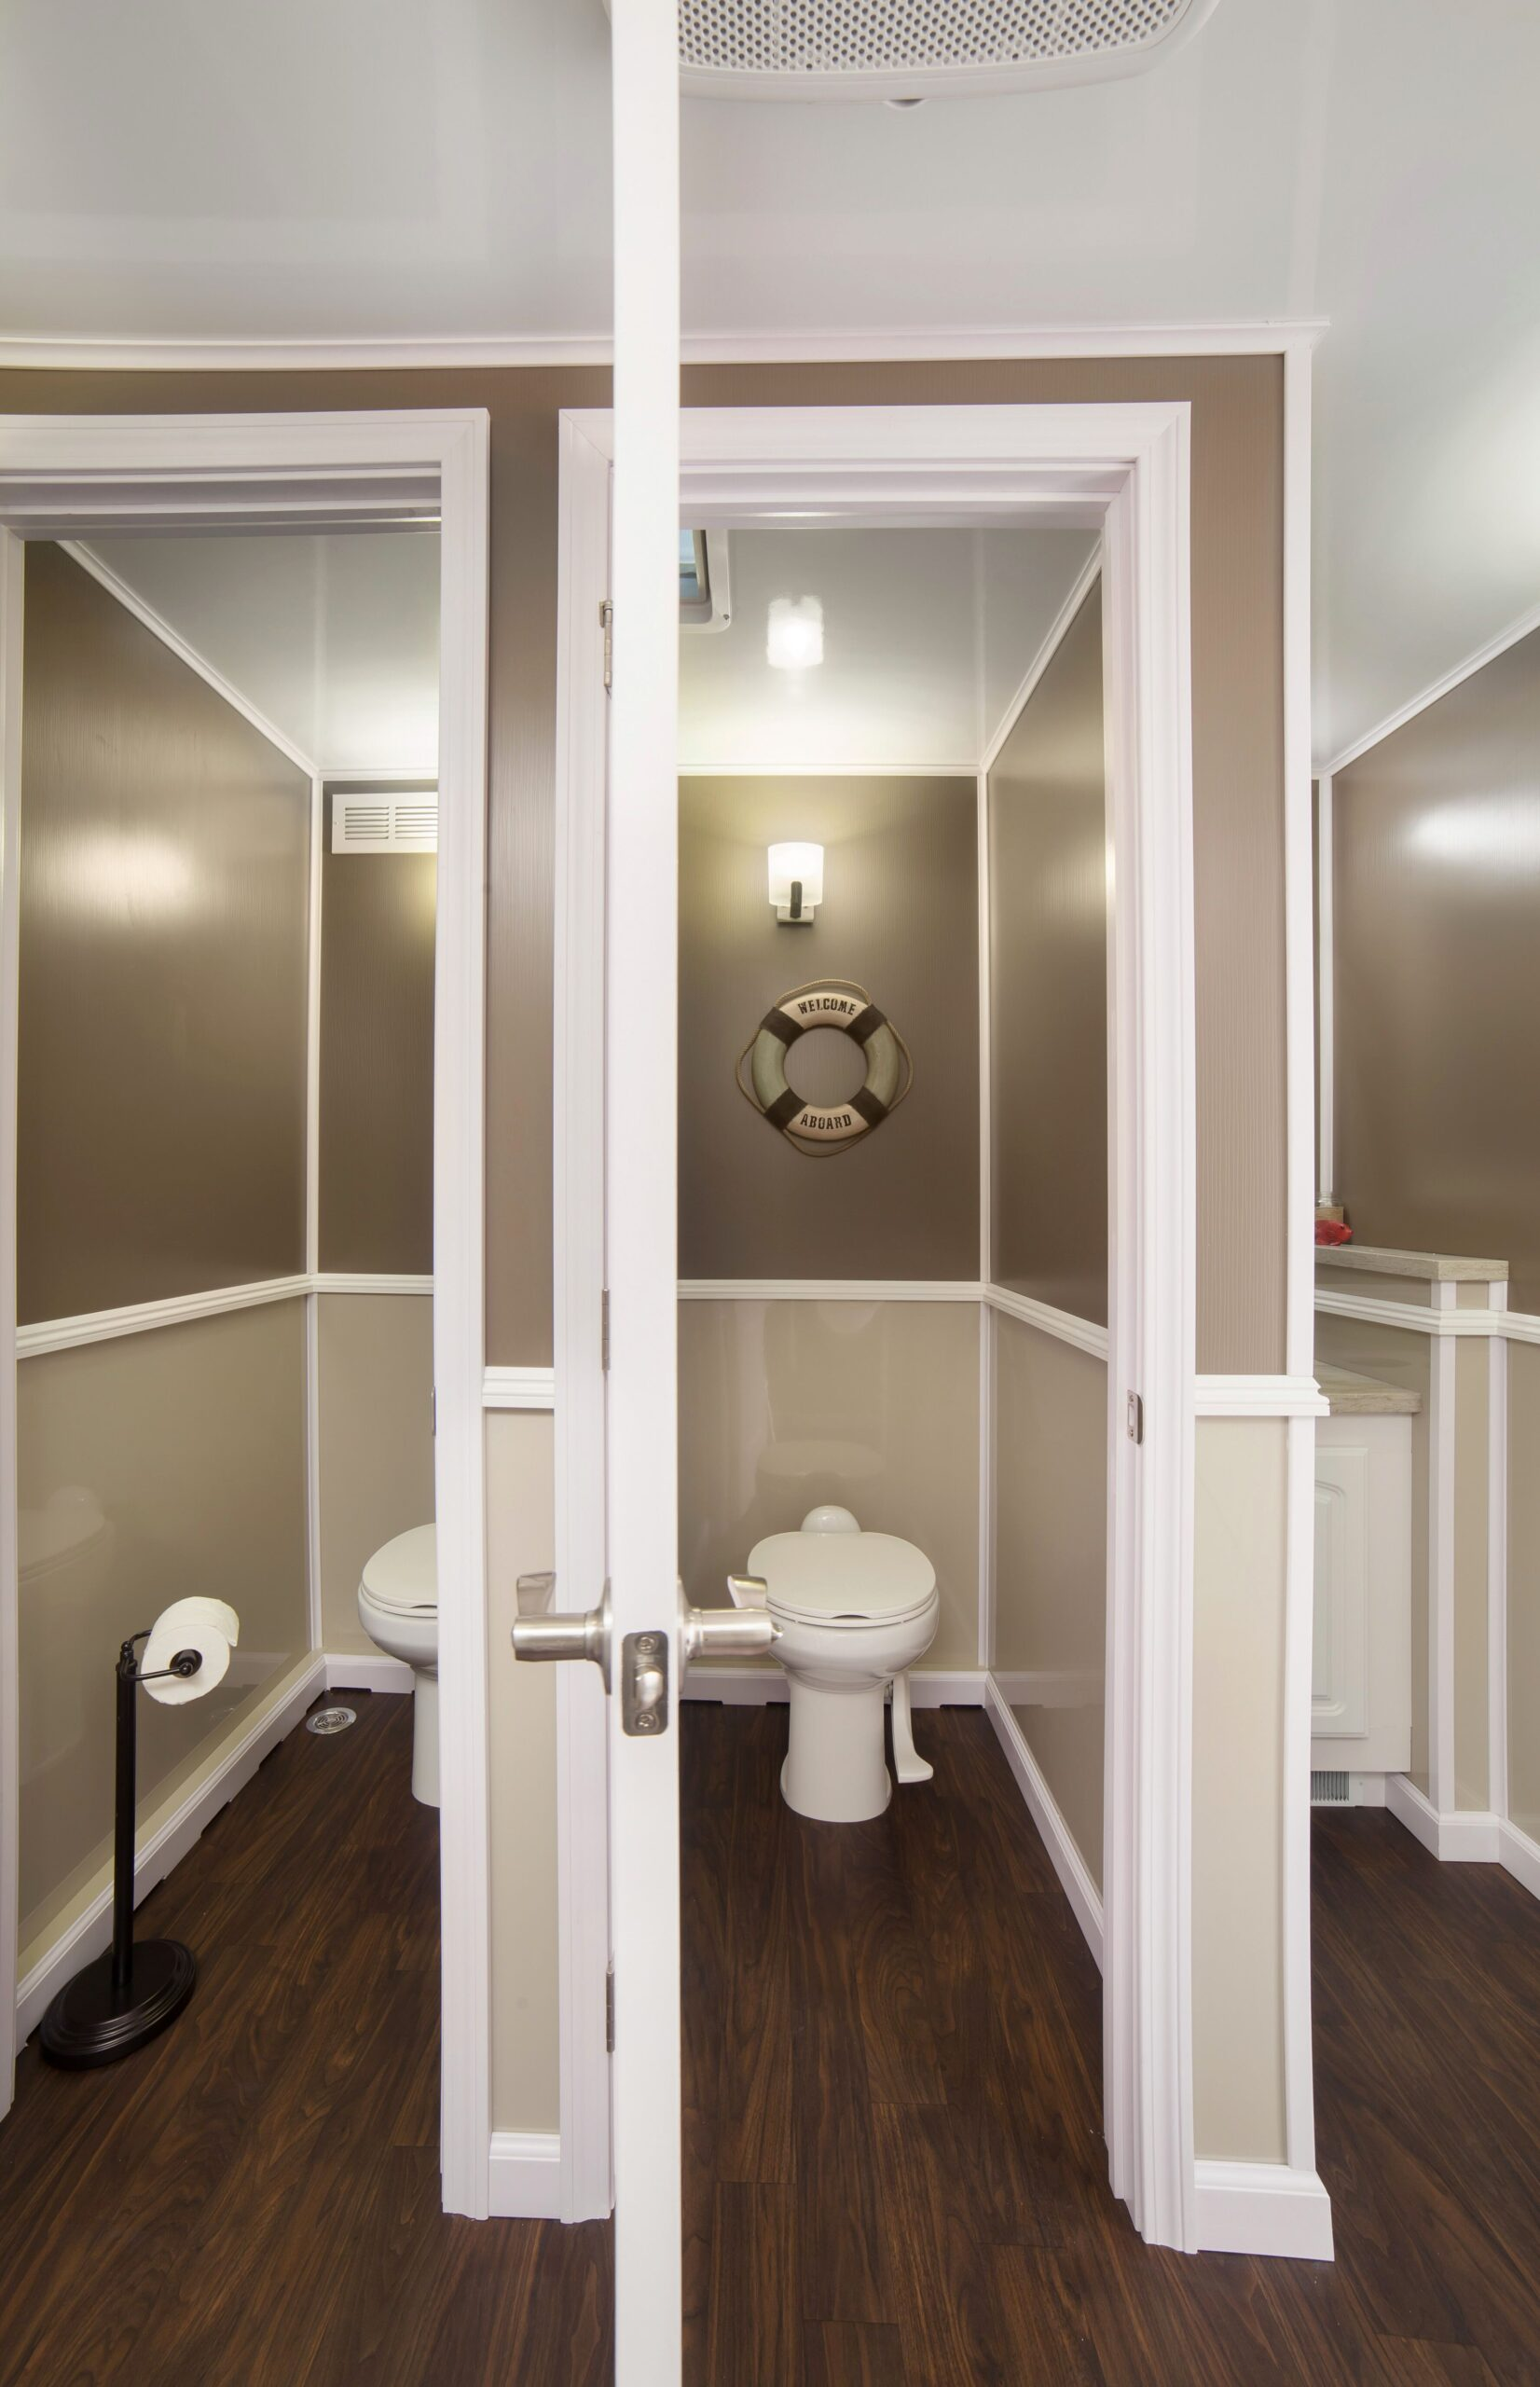 Inside look of two station restroom trailer where stalls are placed